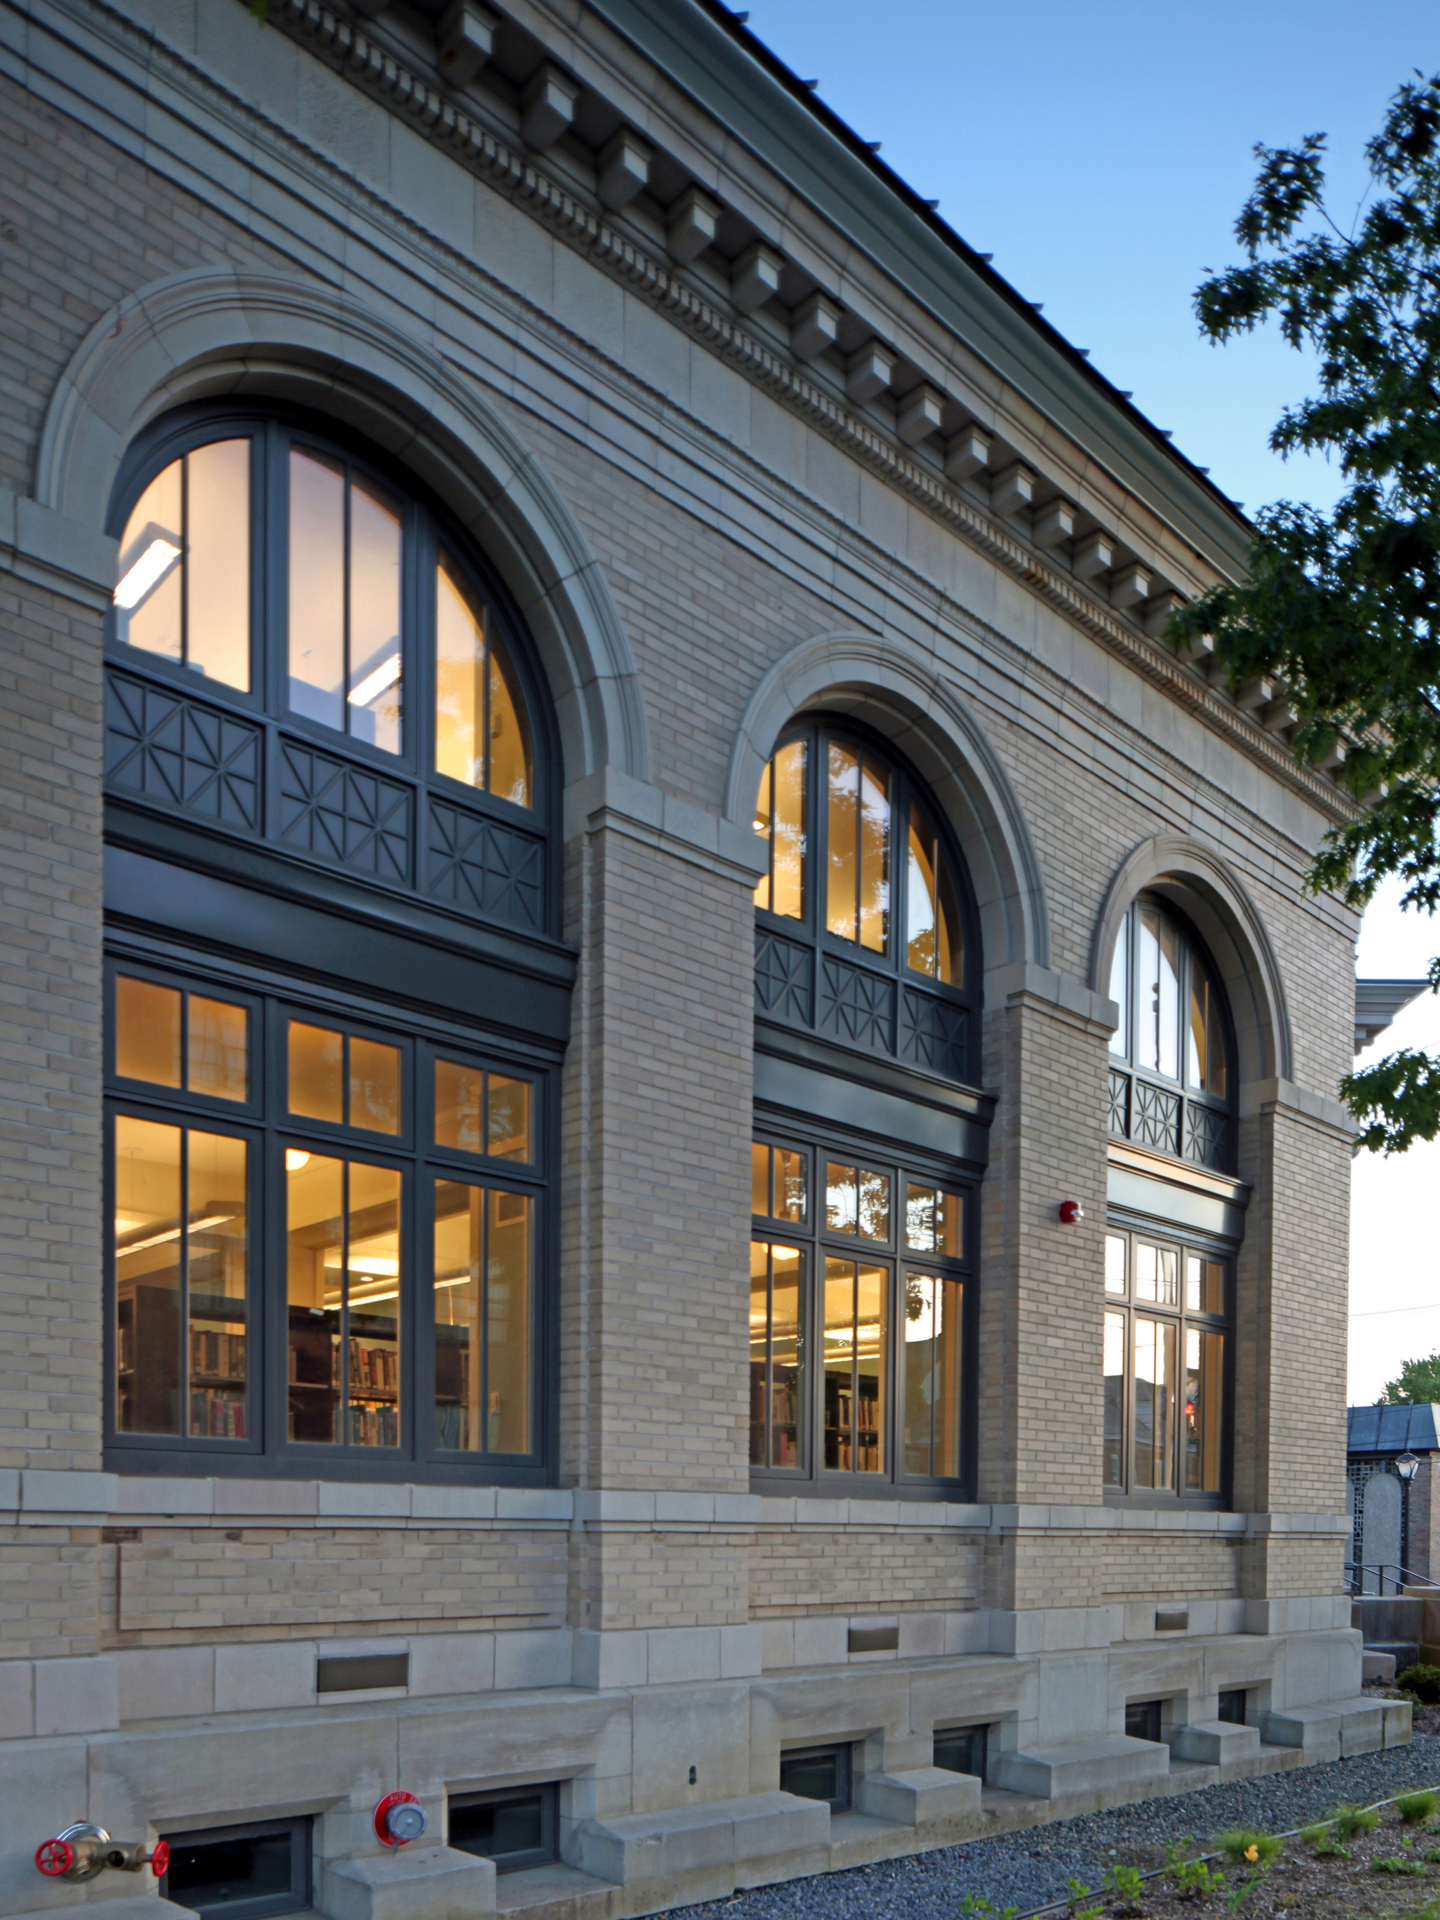 The exterior of the Gloversville Public Library was renovated with aluminum-clad wood casement, awning and fixed windows in a variety of shapes and sizes. One of the building's most striking features are the reading nooks on the upper floors concentrated at the crown of arch-top windows that rise as much as two full stories.